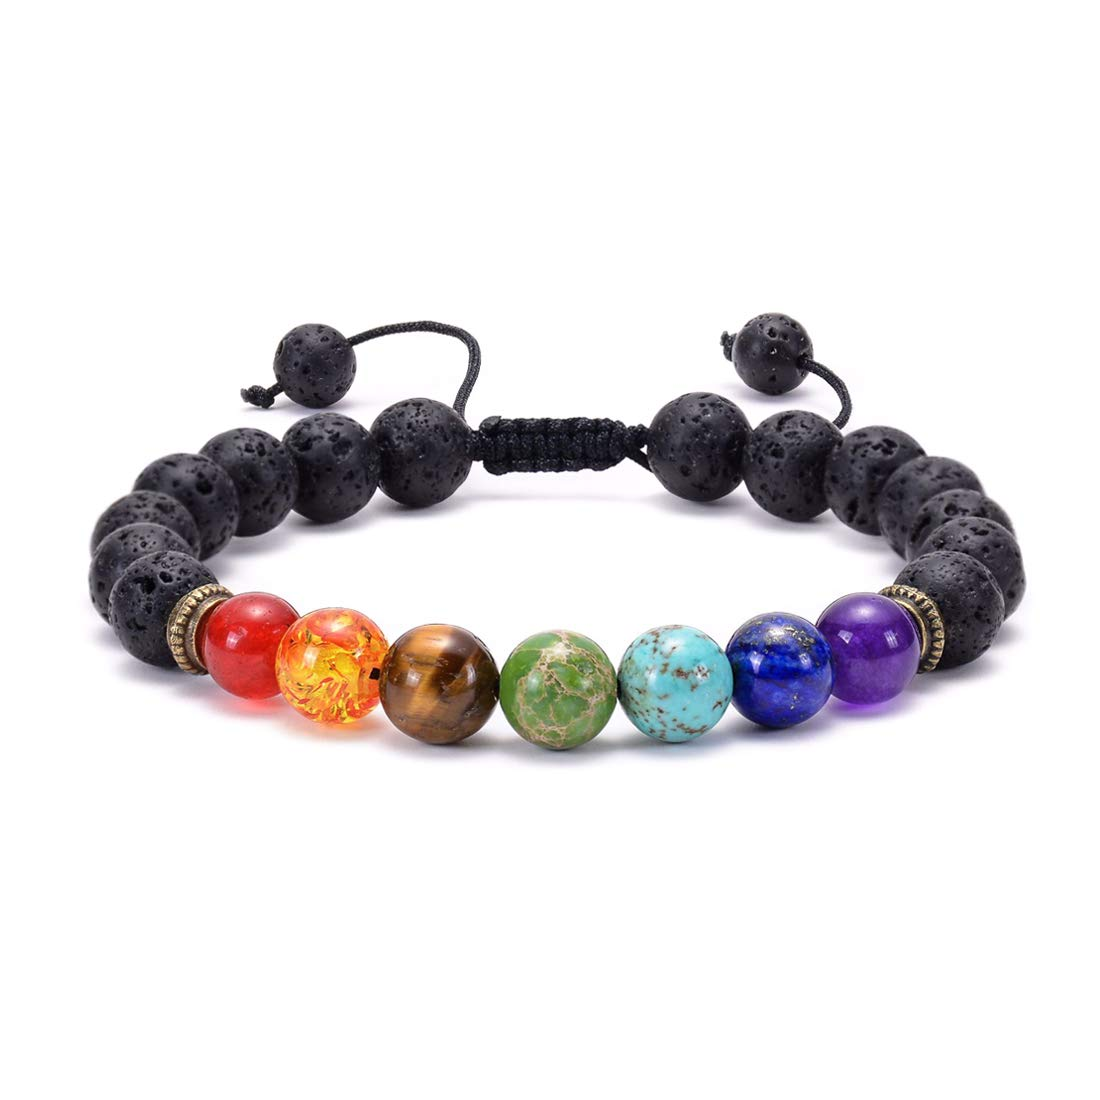 Swlttal 7 Chakra Natural Lava Rock Aromatherapy Essential Oil Diffuser Bracelet Yoga Stone Bead Healing Bracelet for Women